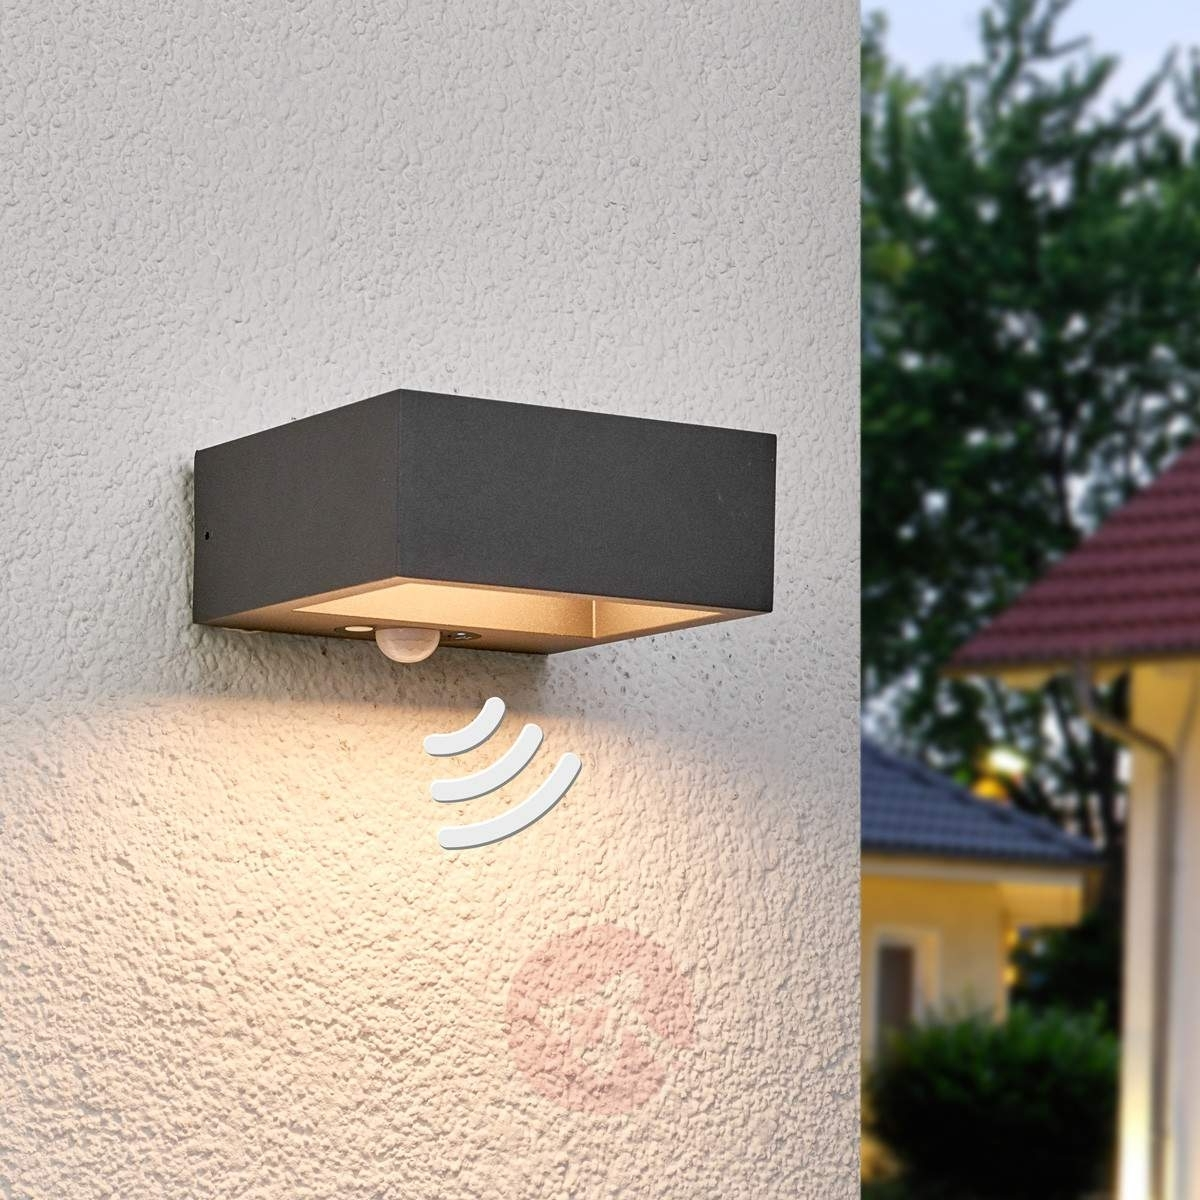 Most Popular Solar Powered Outdoor Wall Lights With Solar Powered Led Outdoor Wall Light Mahra, Sensor (View 5 of 20)